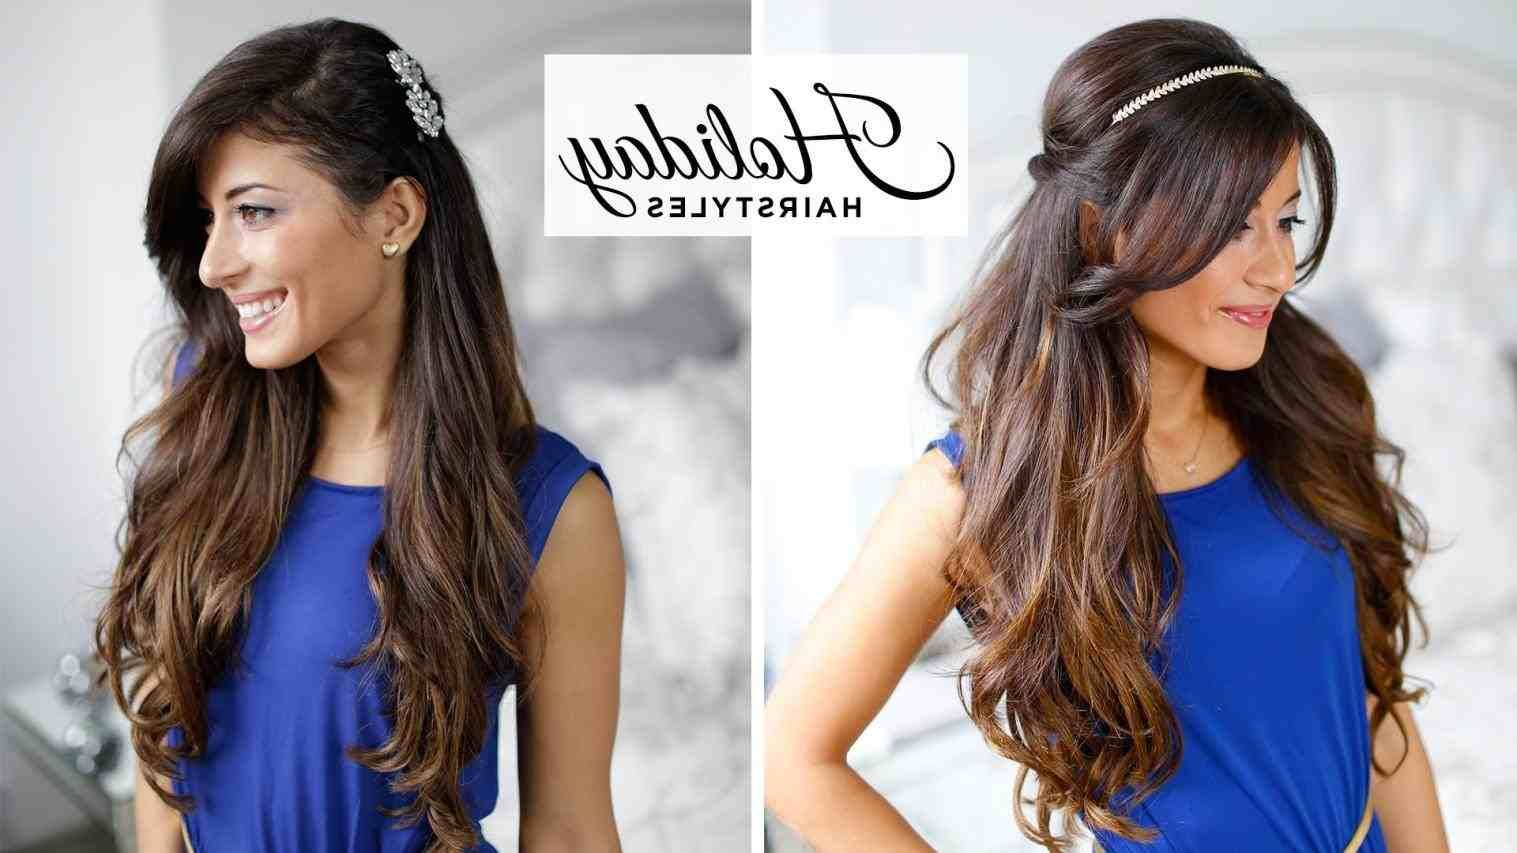 Balayagehair Club Nbspthis Website Is For Sale Nbspbalayagehair Resources And Information Easy Party Hairstyles Party Hairstyles For Long Hair Hair Styles